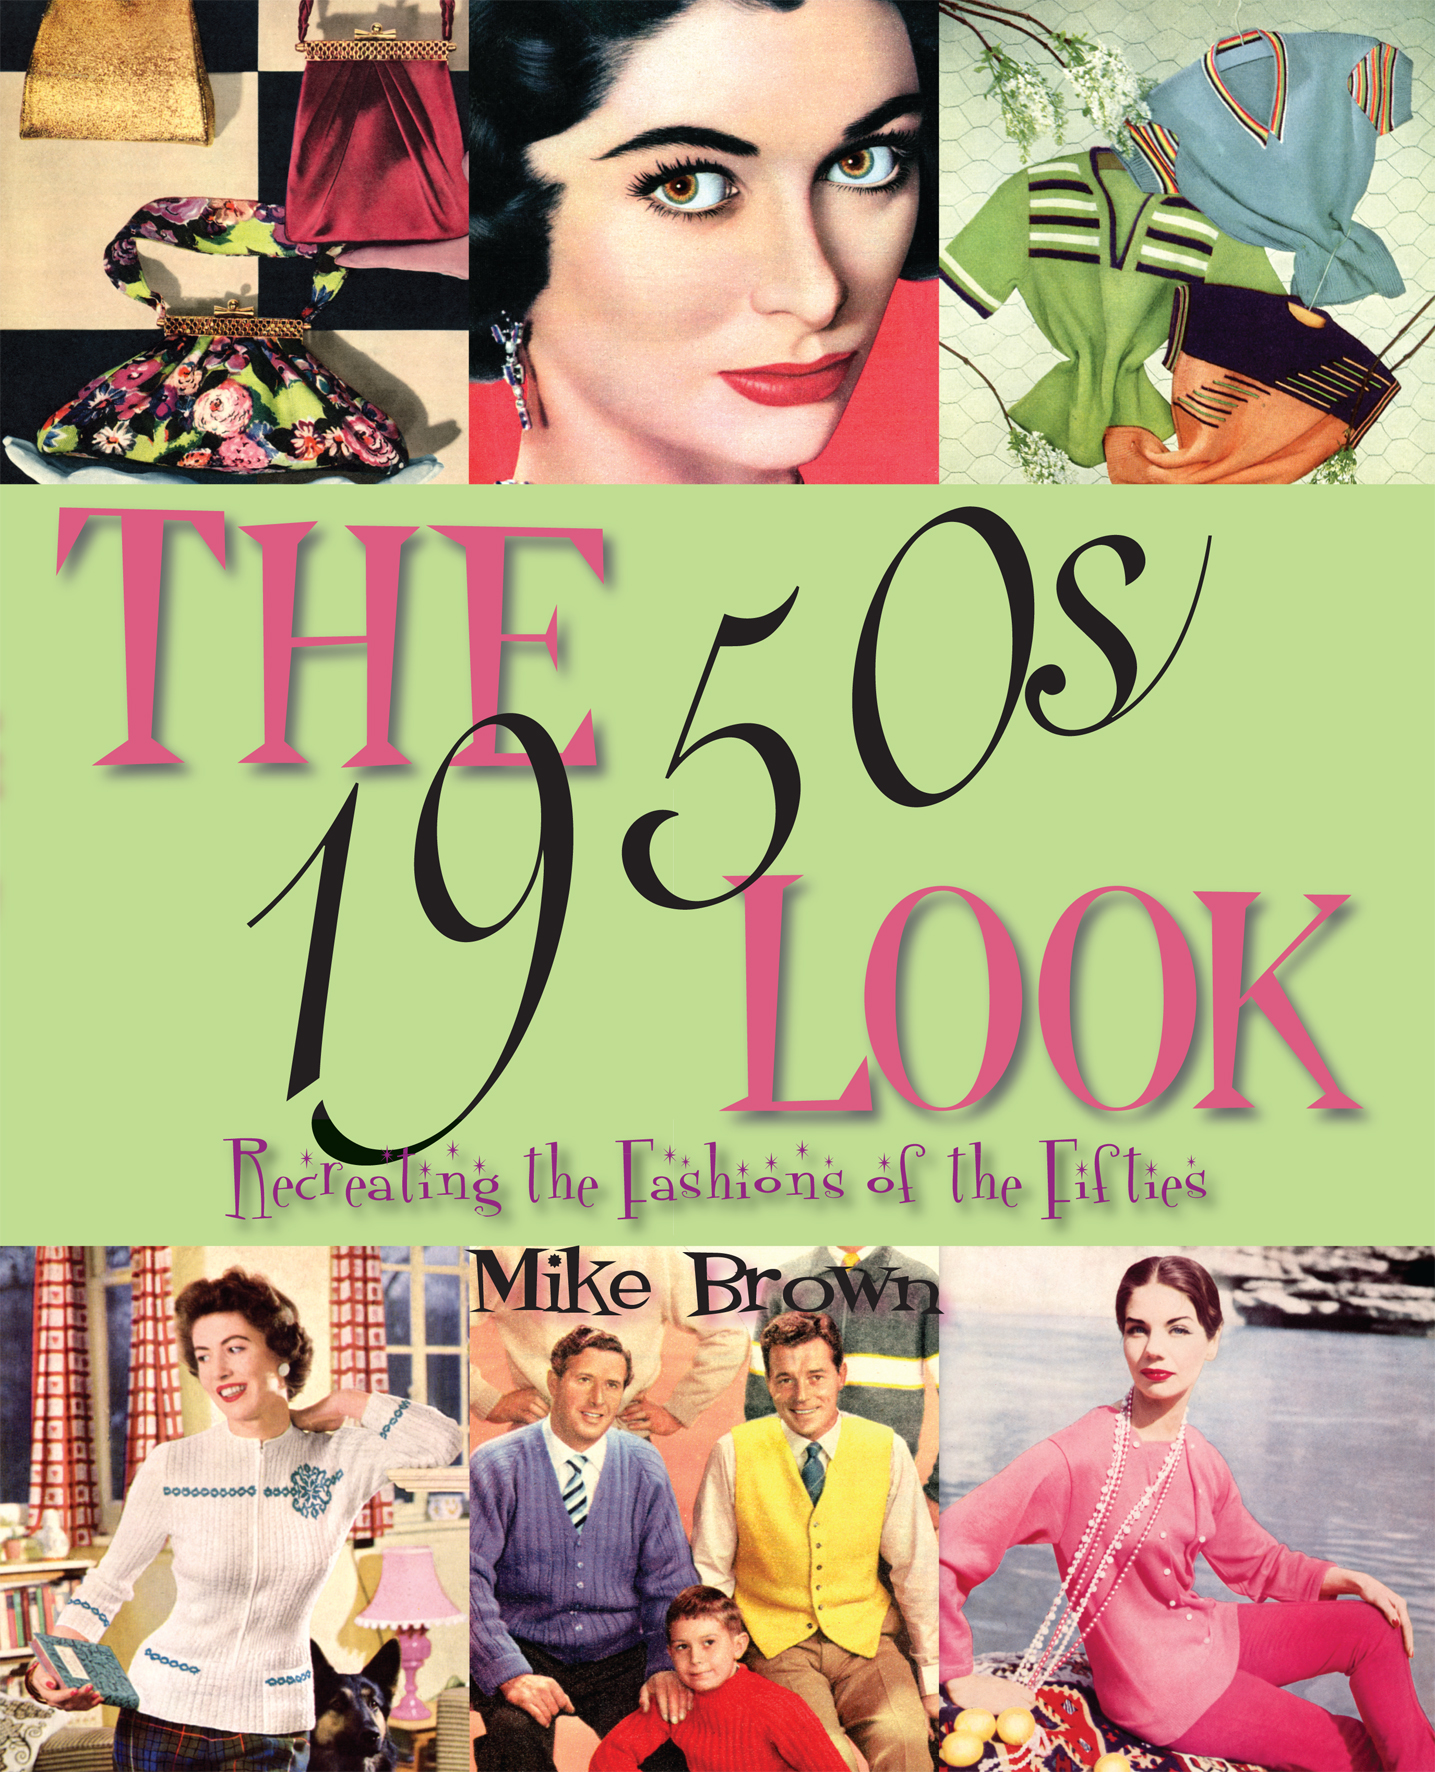 The 1950s Look: Recreating the Fashions of the Fifties'